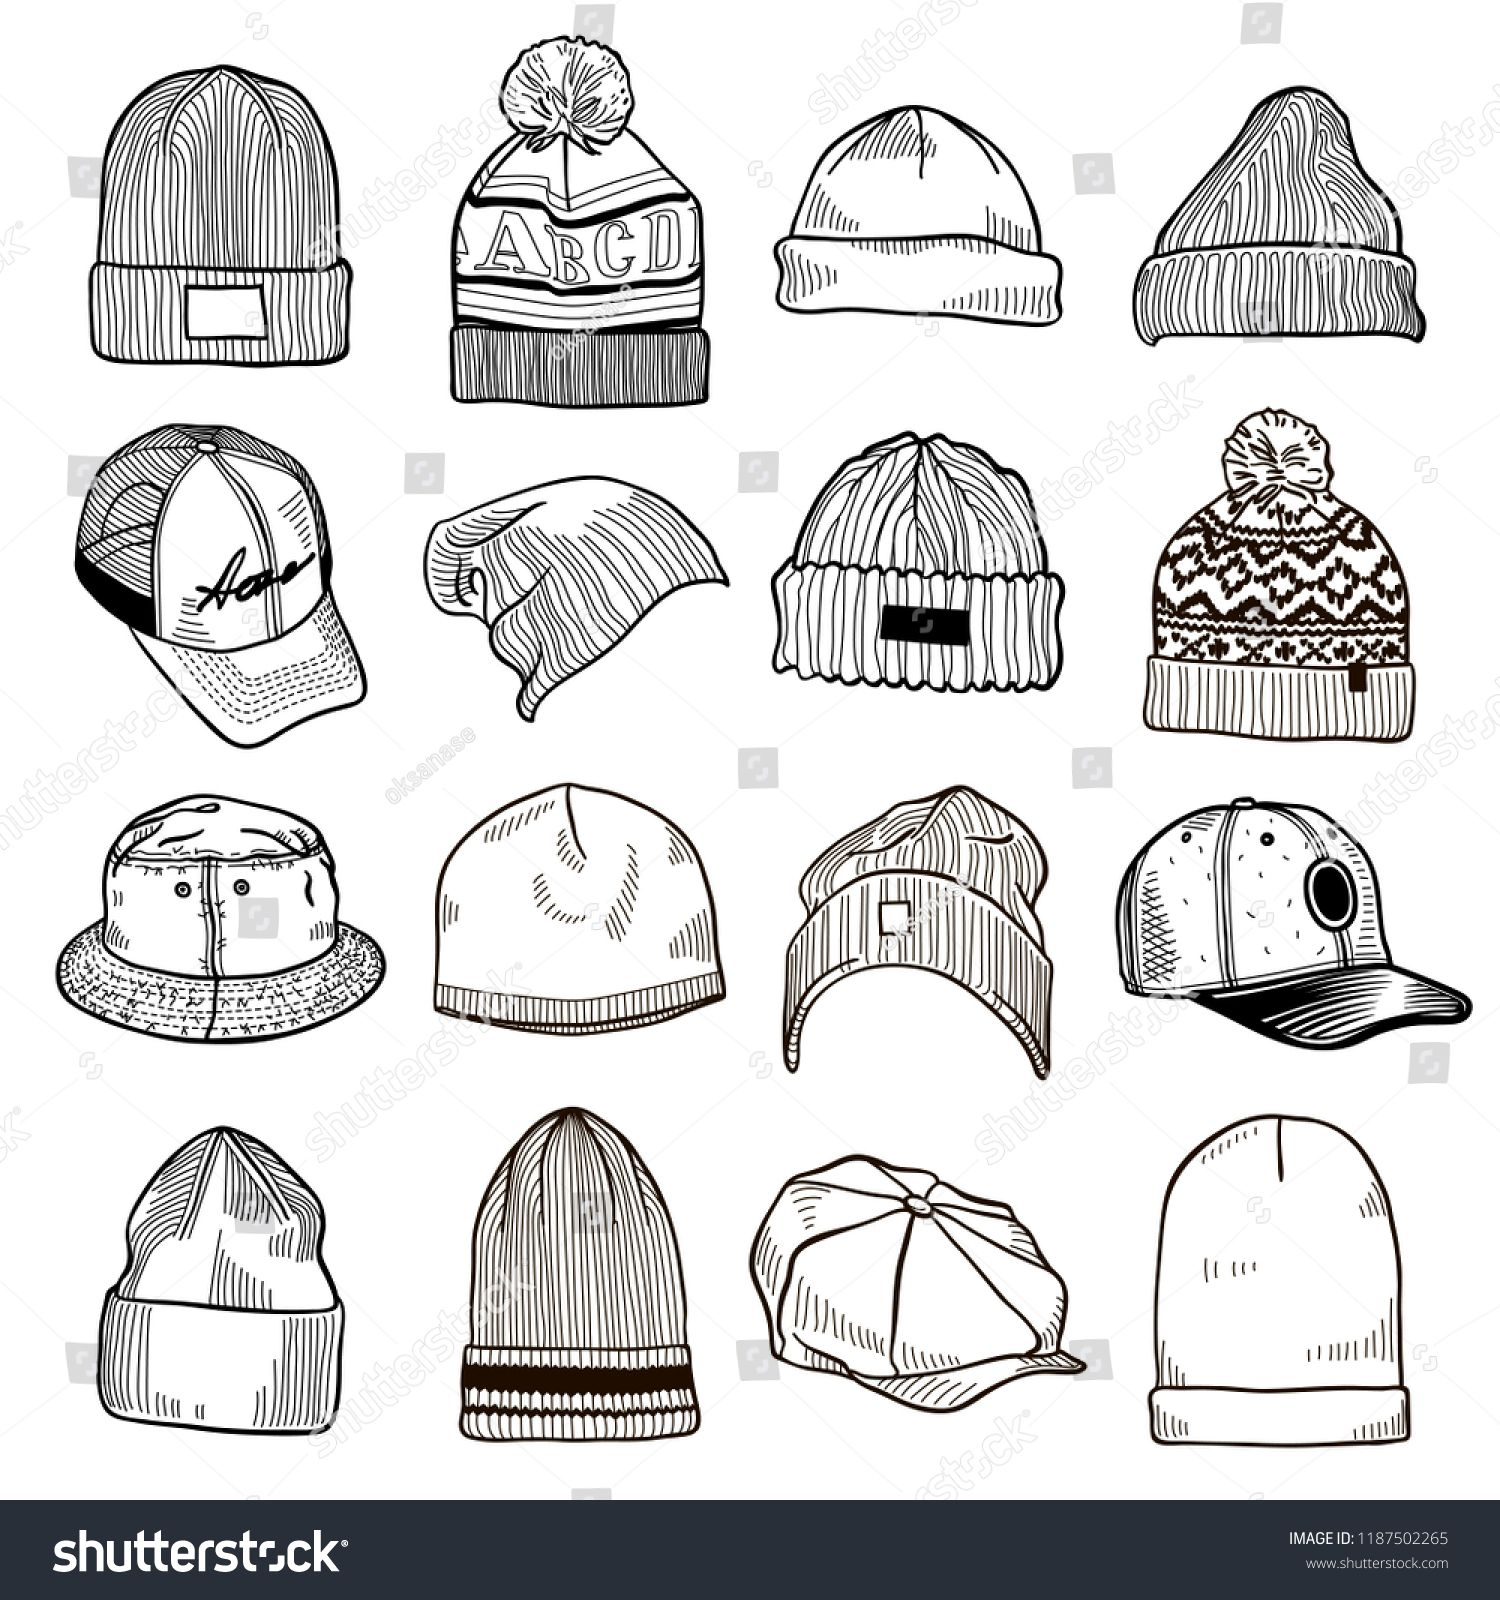 Set Of Fashion Men S Caps And Hats Sketches Baseball Caps Snap Back Cap Trucker Cap Baker Boy Cap Knitted H Drawing Anime Clothes Drawing Clothes Sketches